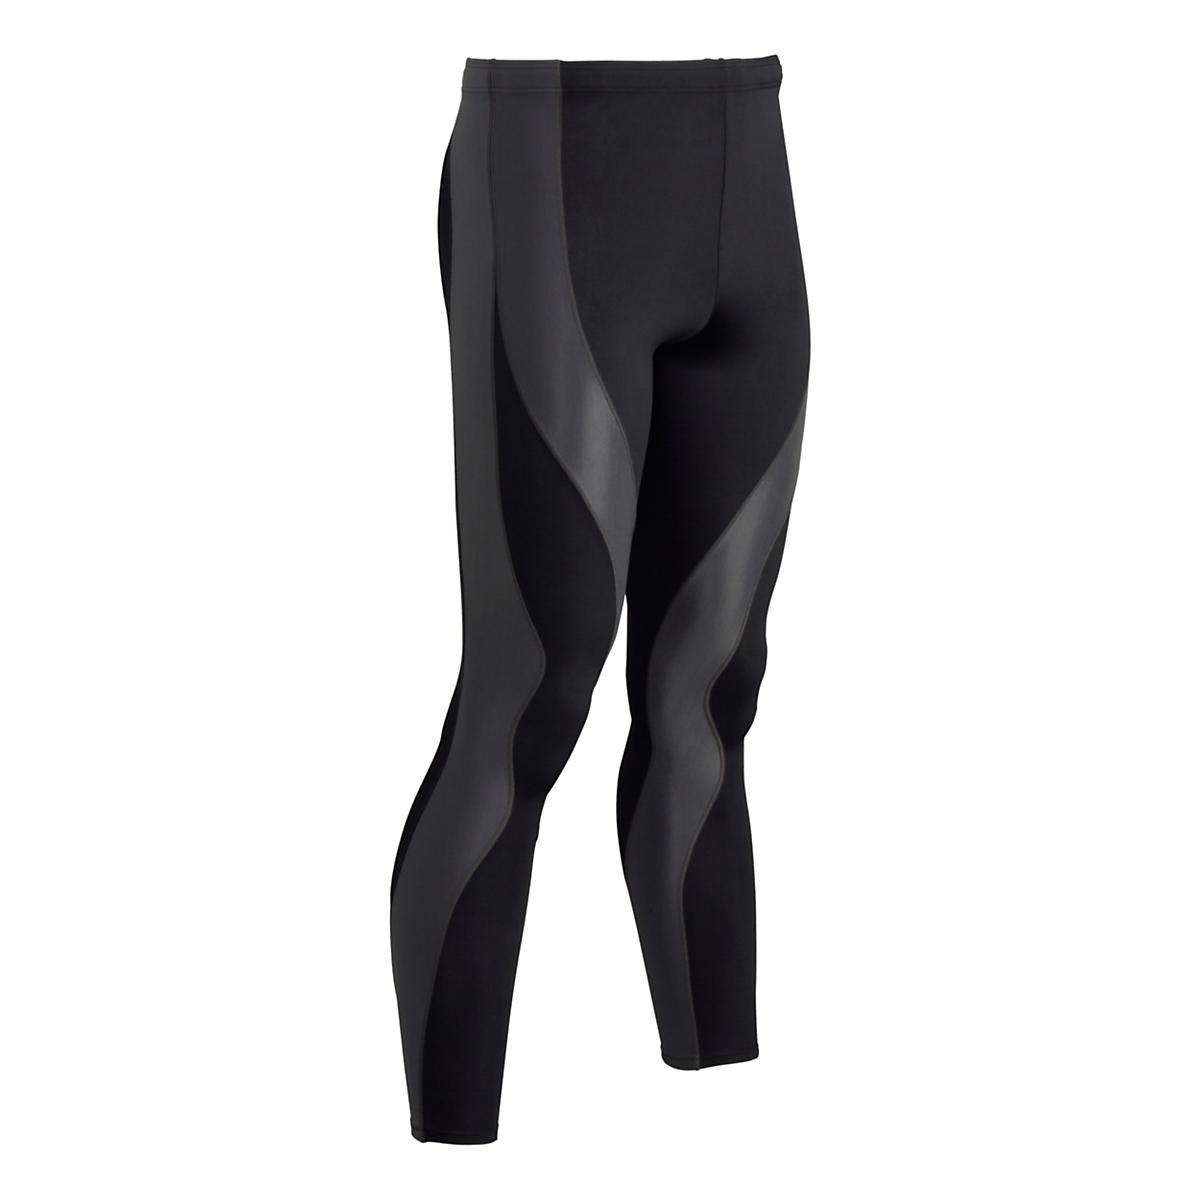 Men's CW-X�PerformX Tight